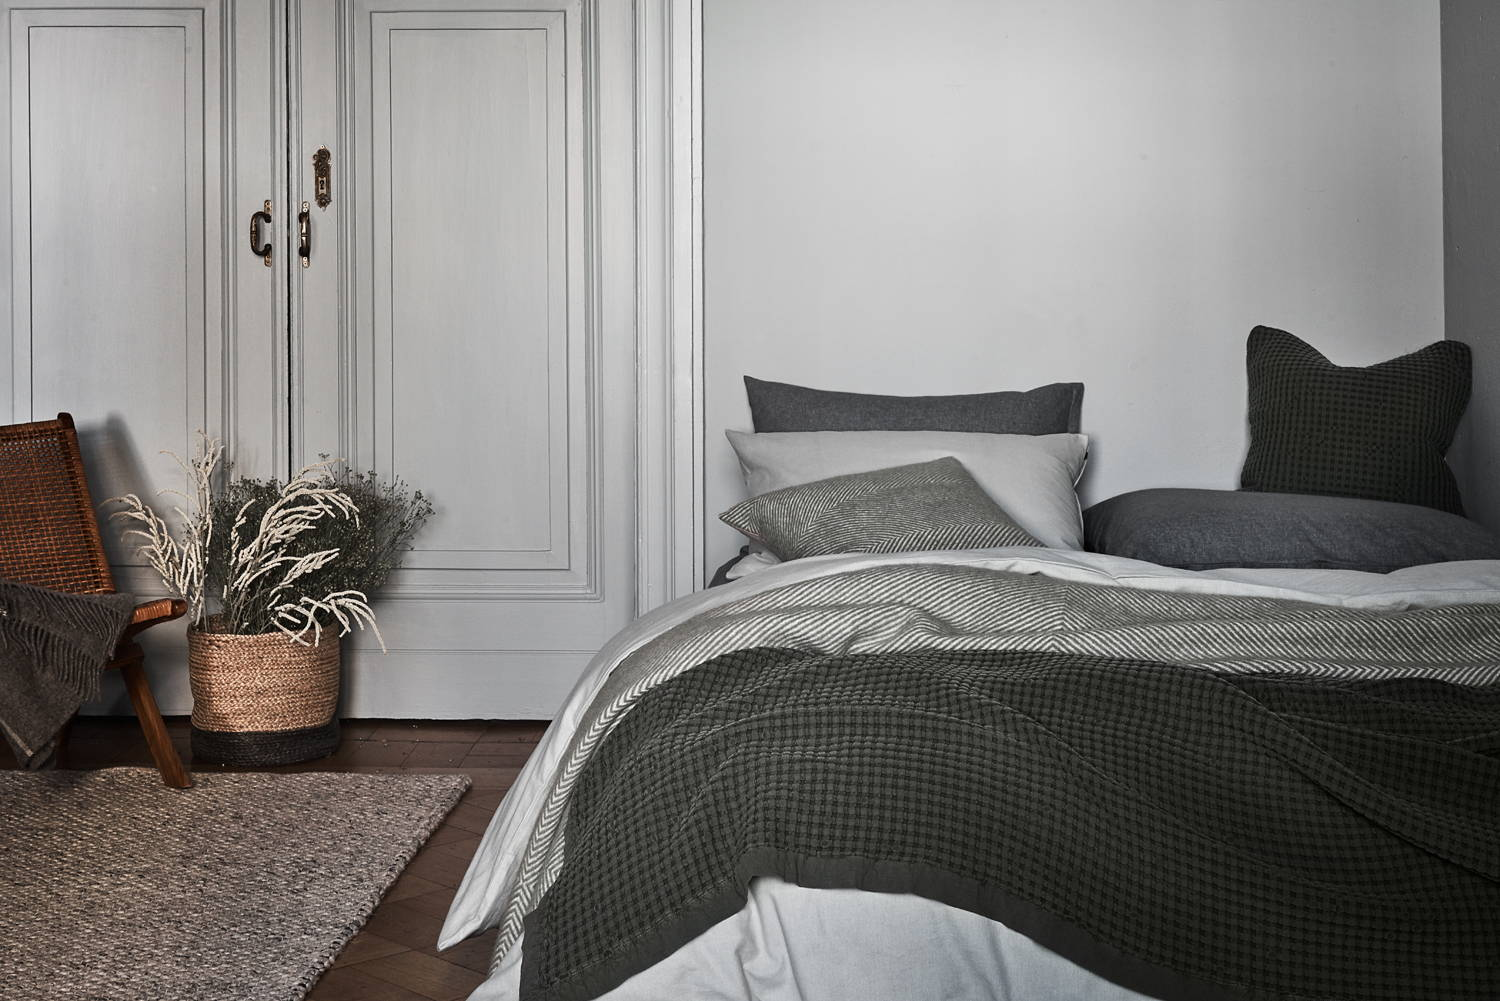 Lagom style bedroom with grey bed throws and grey and white bedding, jute basket and rattan chair